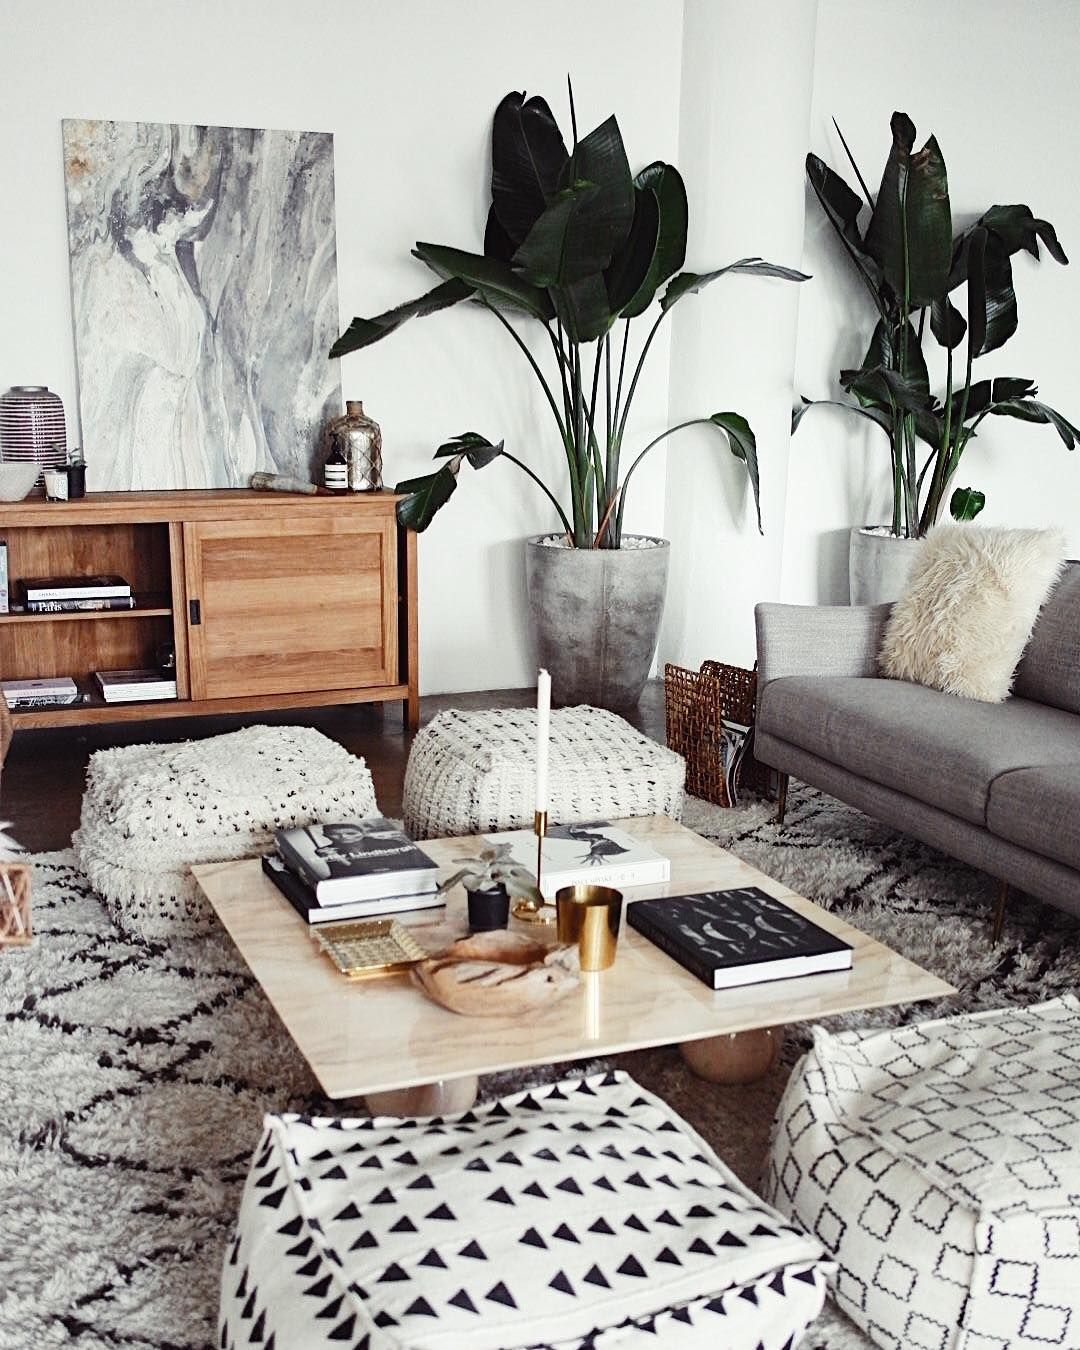 no coffee table living room simple interior design photo gallery pin by kooteag on ideas pinterest 410 9k followers 619 following 2 056 posts see instagram photos and videos from